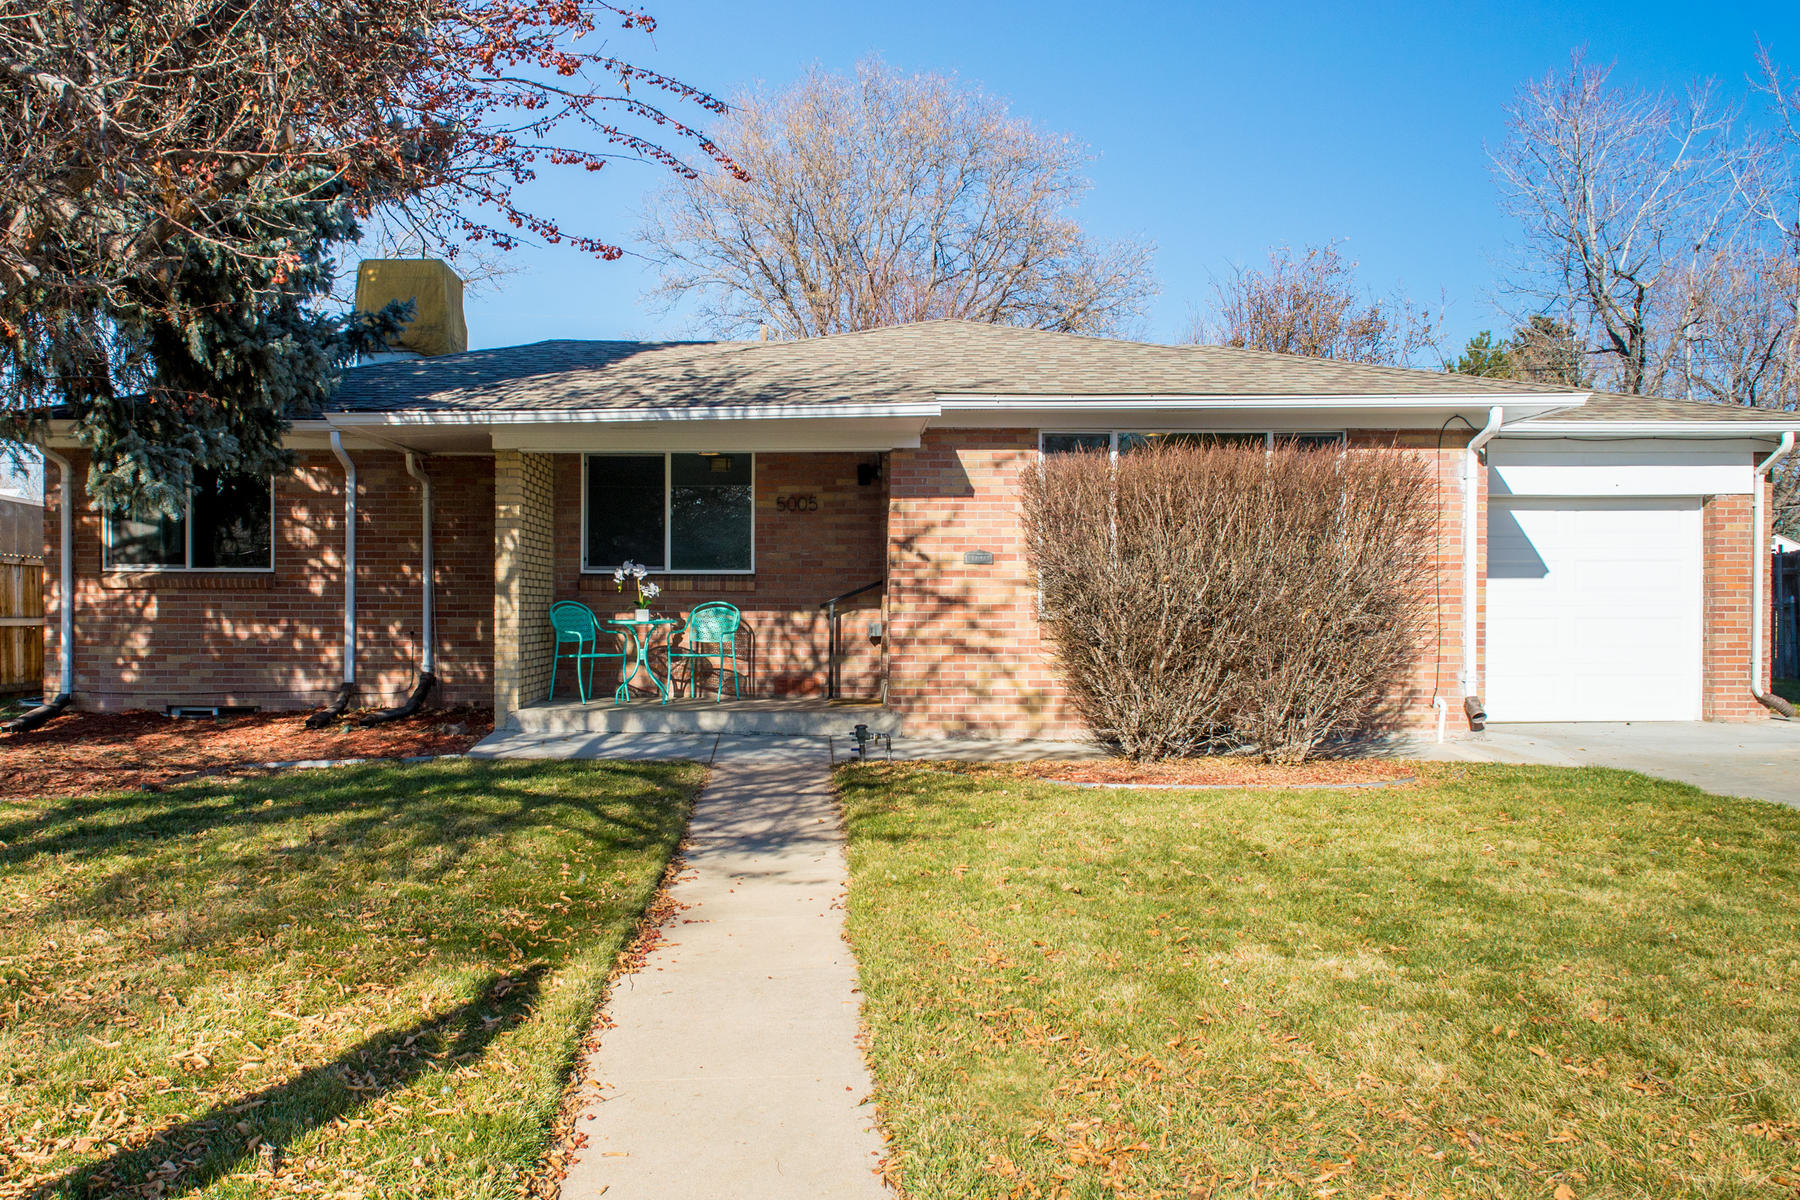 Single Family Home for Active at Perfectly appointed brick ranch home in Virgina Village 5005 Atlantic Place Denver, Colorado 80222 United States